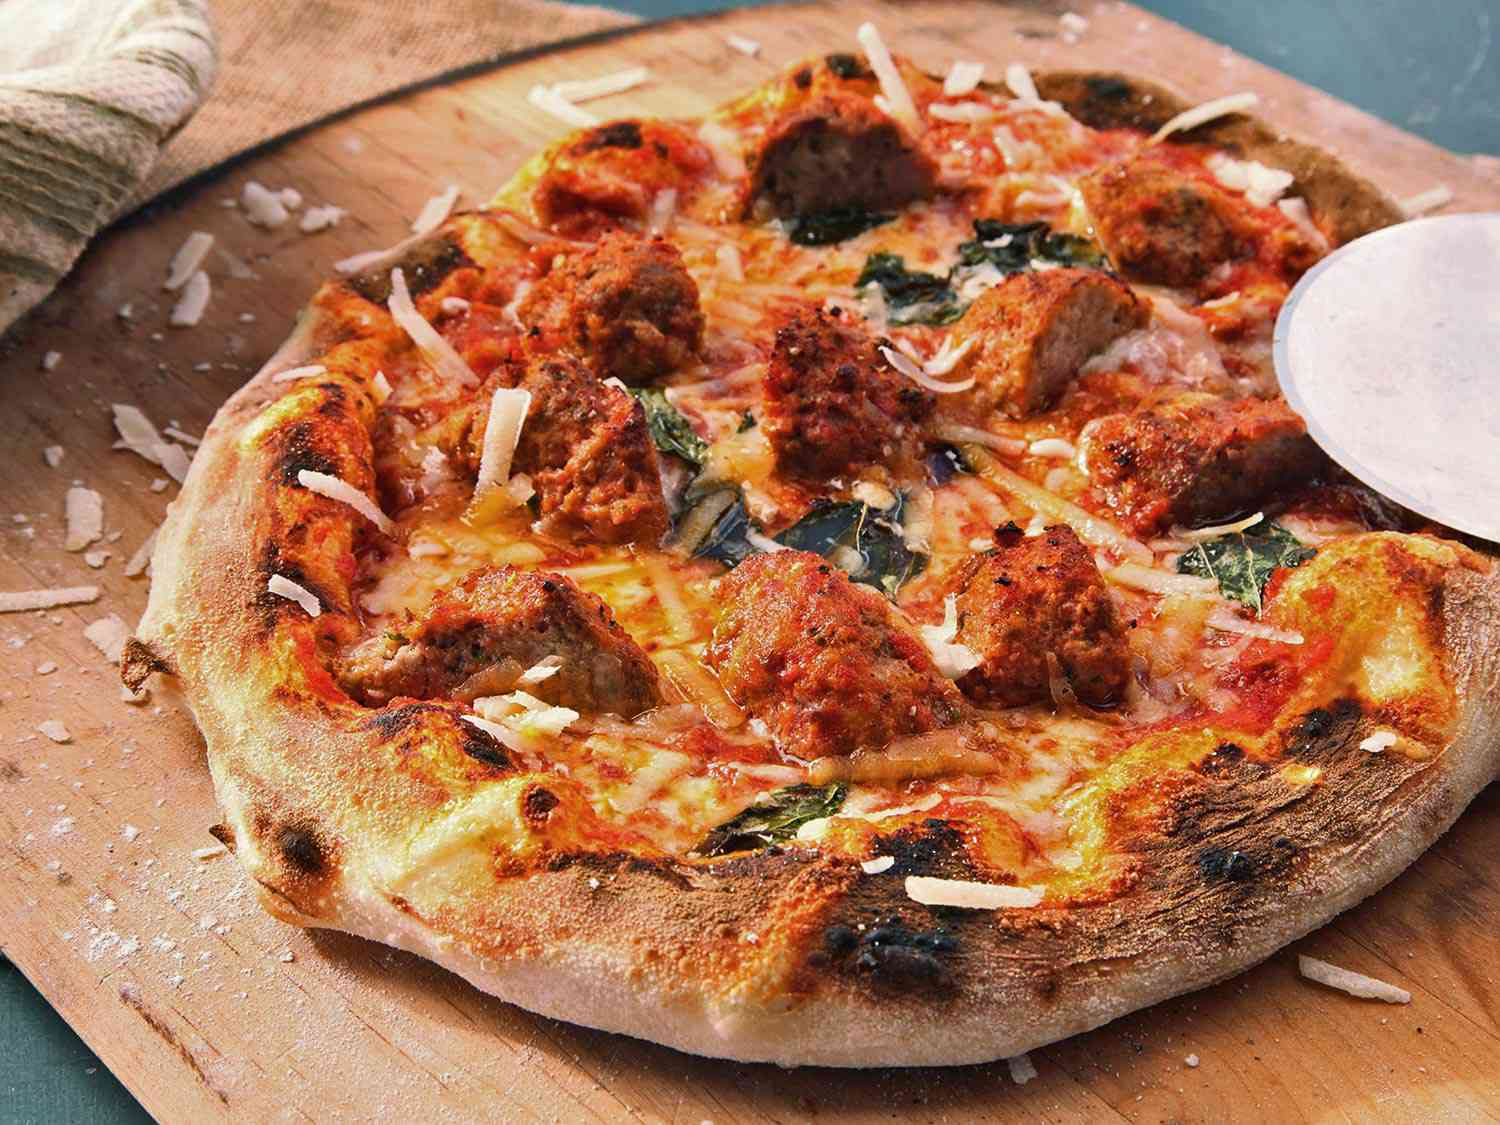 A small pizza topped with quartered large meatballs, on a wooden surface